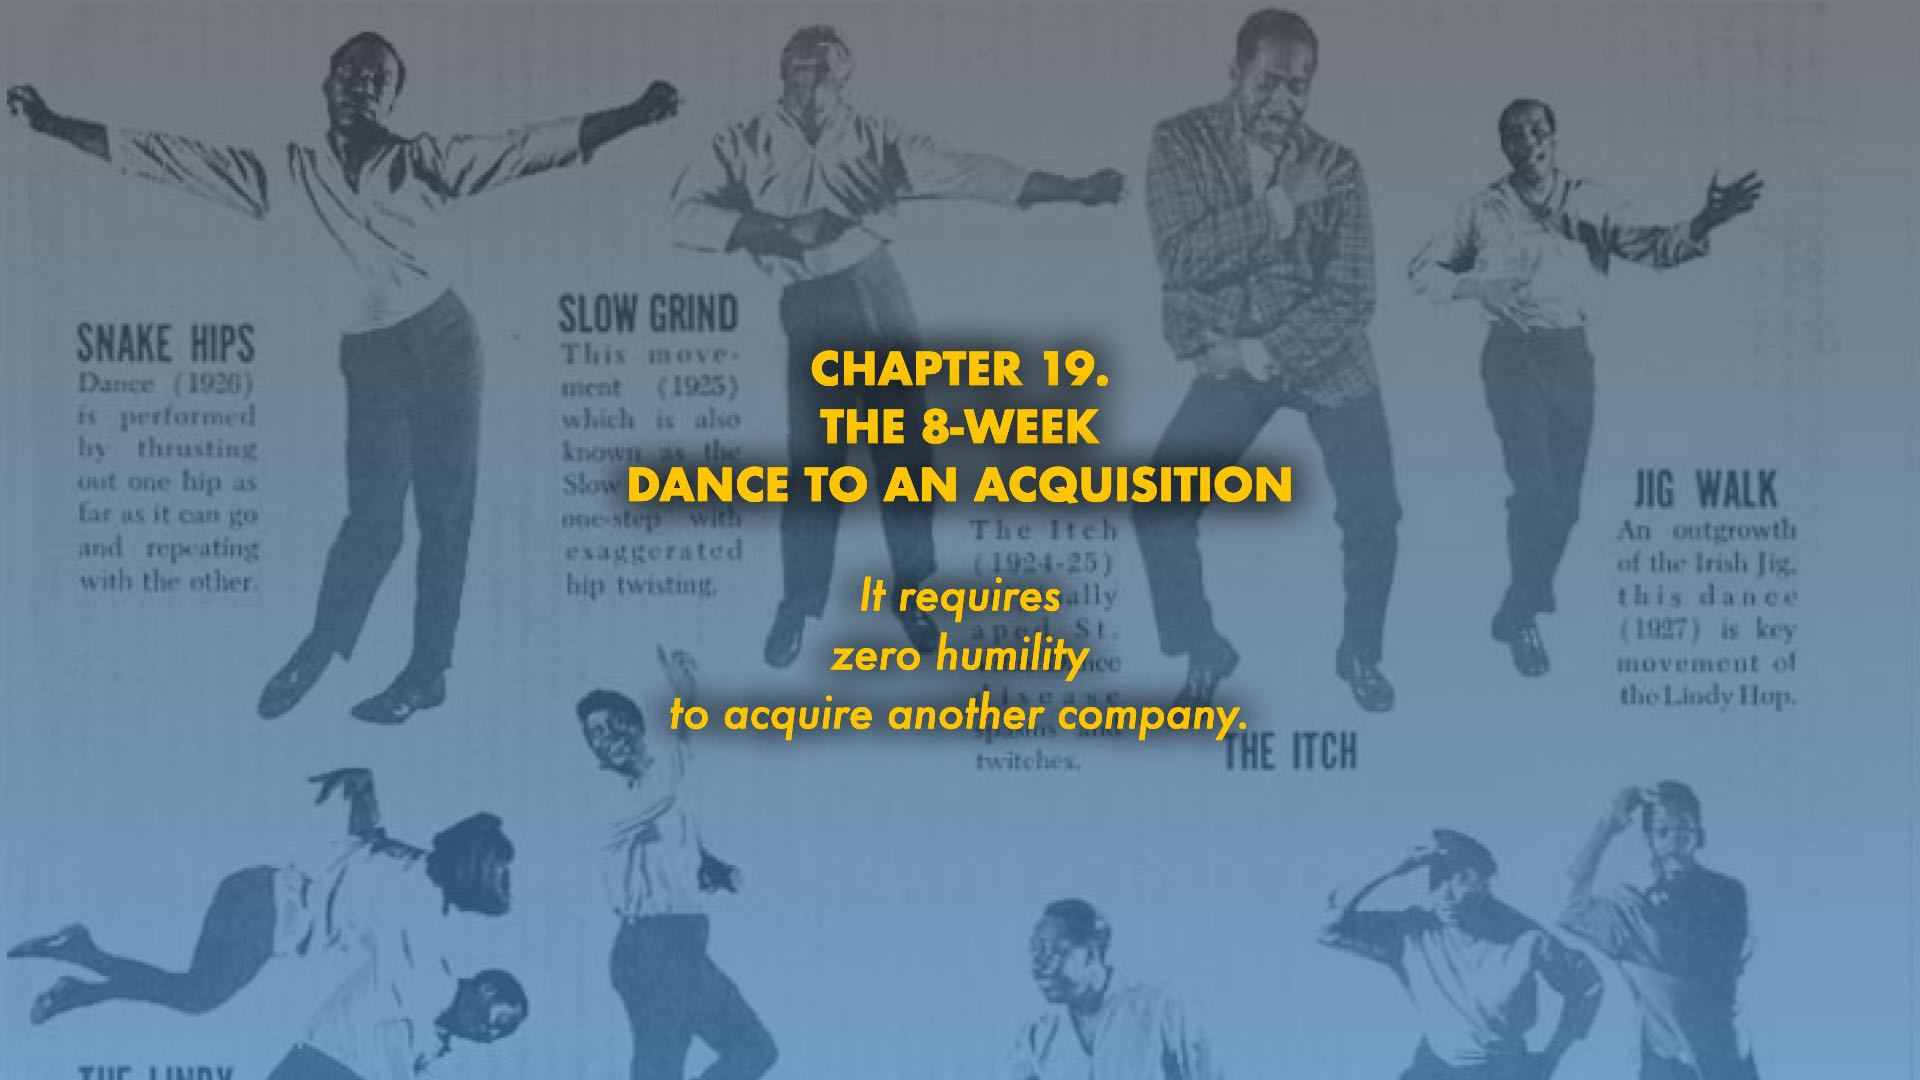 The 8-Week Dance to an Acquisition